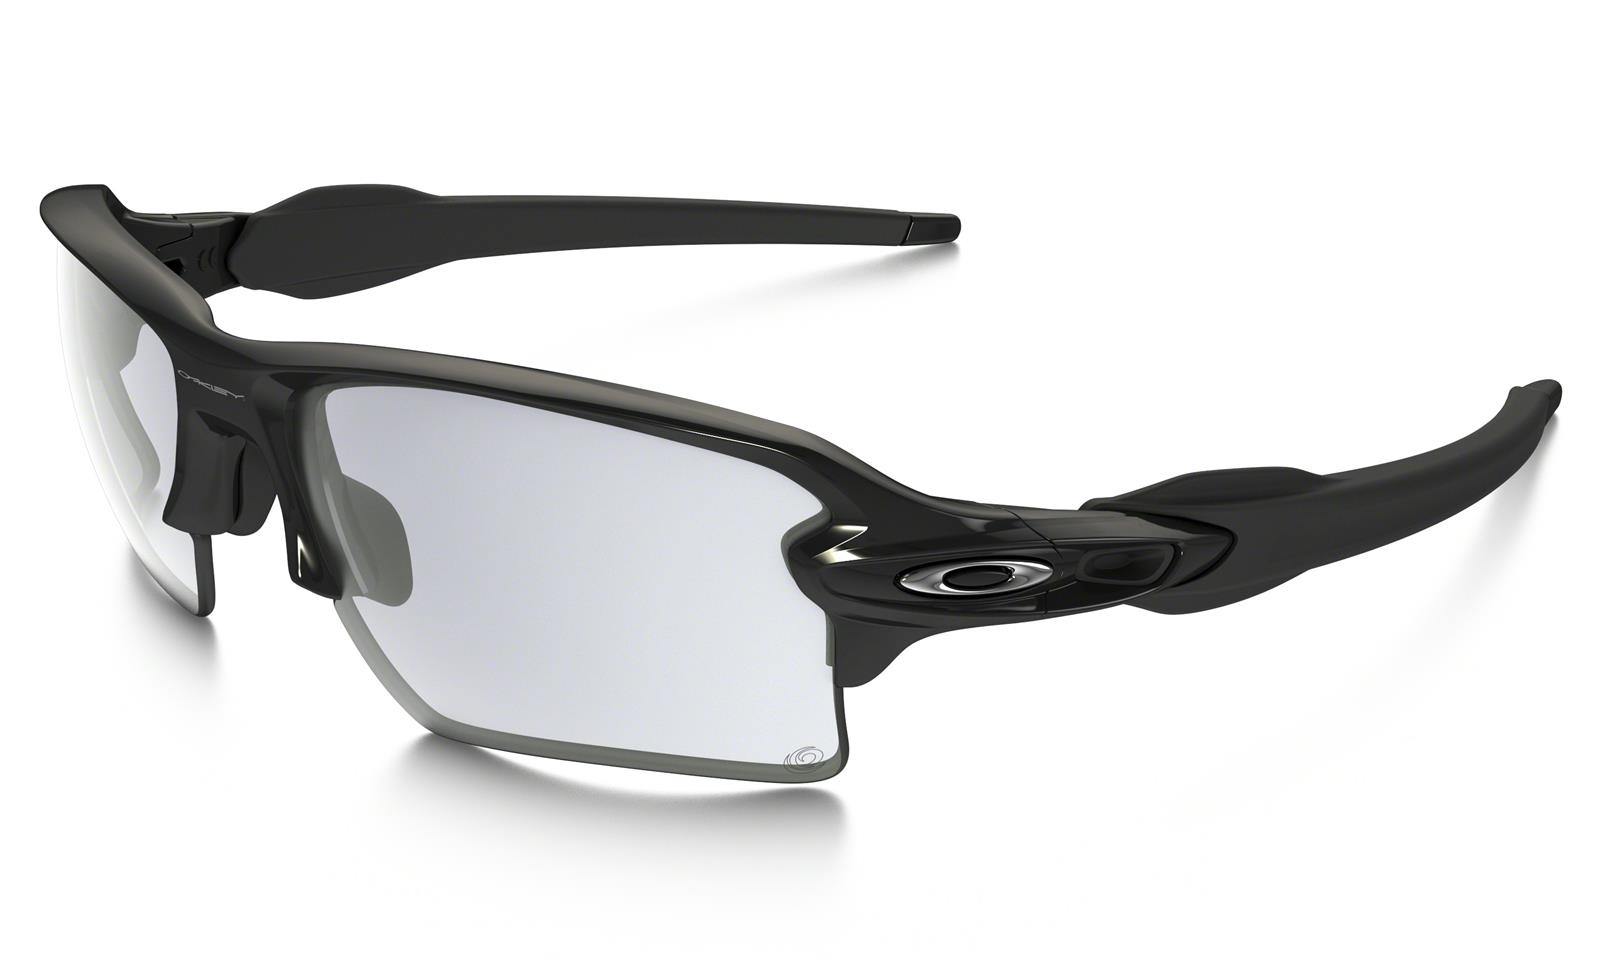 3b76f85f097f6 Oakley Flak 2.0 XL Sunglasses OO9188-50 - Free Shipping on Orders Over  99  at Summit Racing